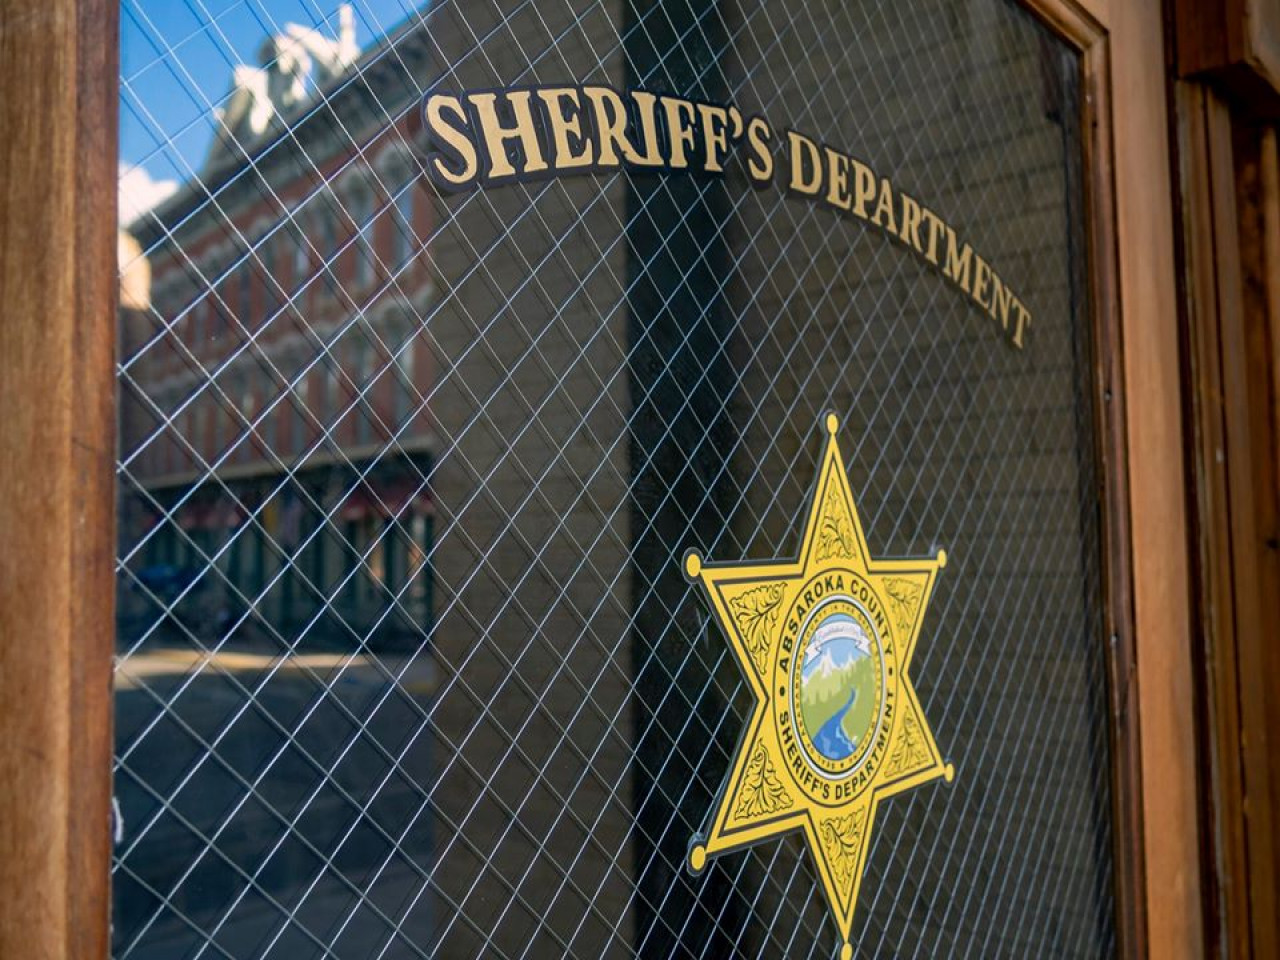 Thanks to a smart business owner, theentrance door still sports the Absaroka County Sheriff's Department badge.